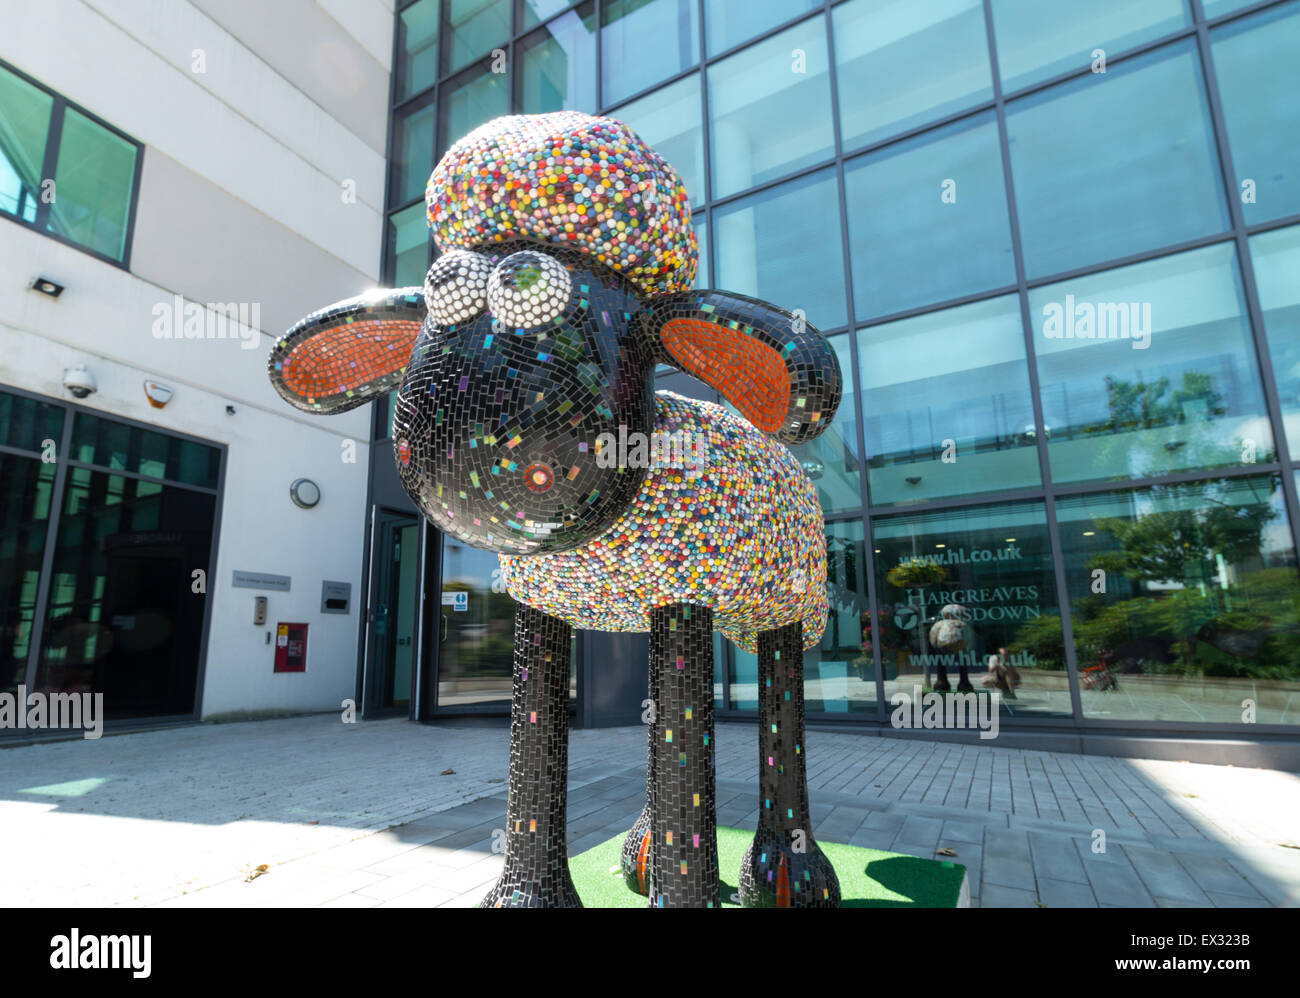 DOLLY by Julie Vernon outside Hardgreaves Lansdown in Bristol. Part of the Shaun the Sheep Art Trail across Bristol - Stock Image